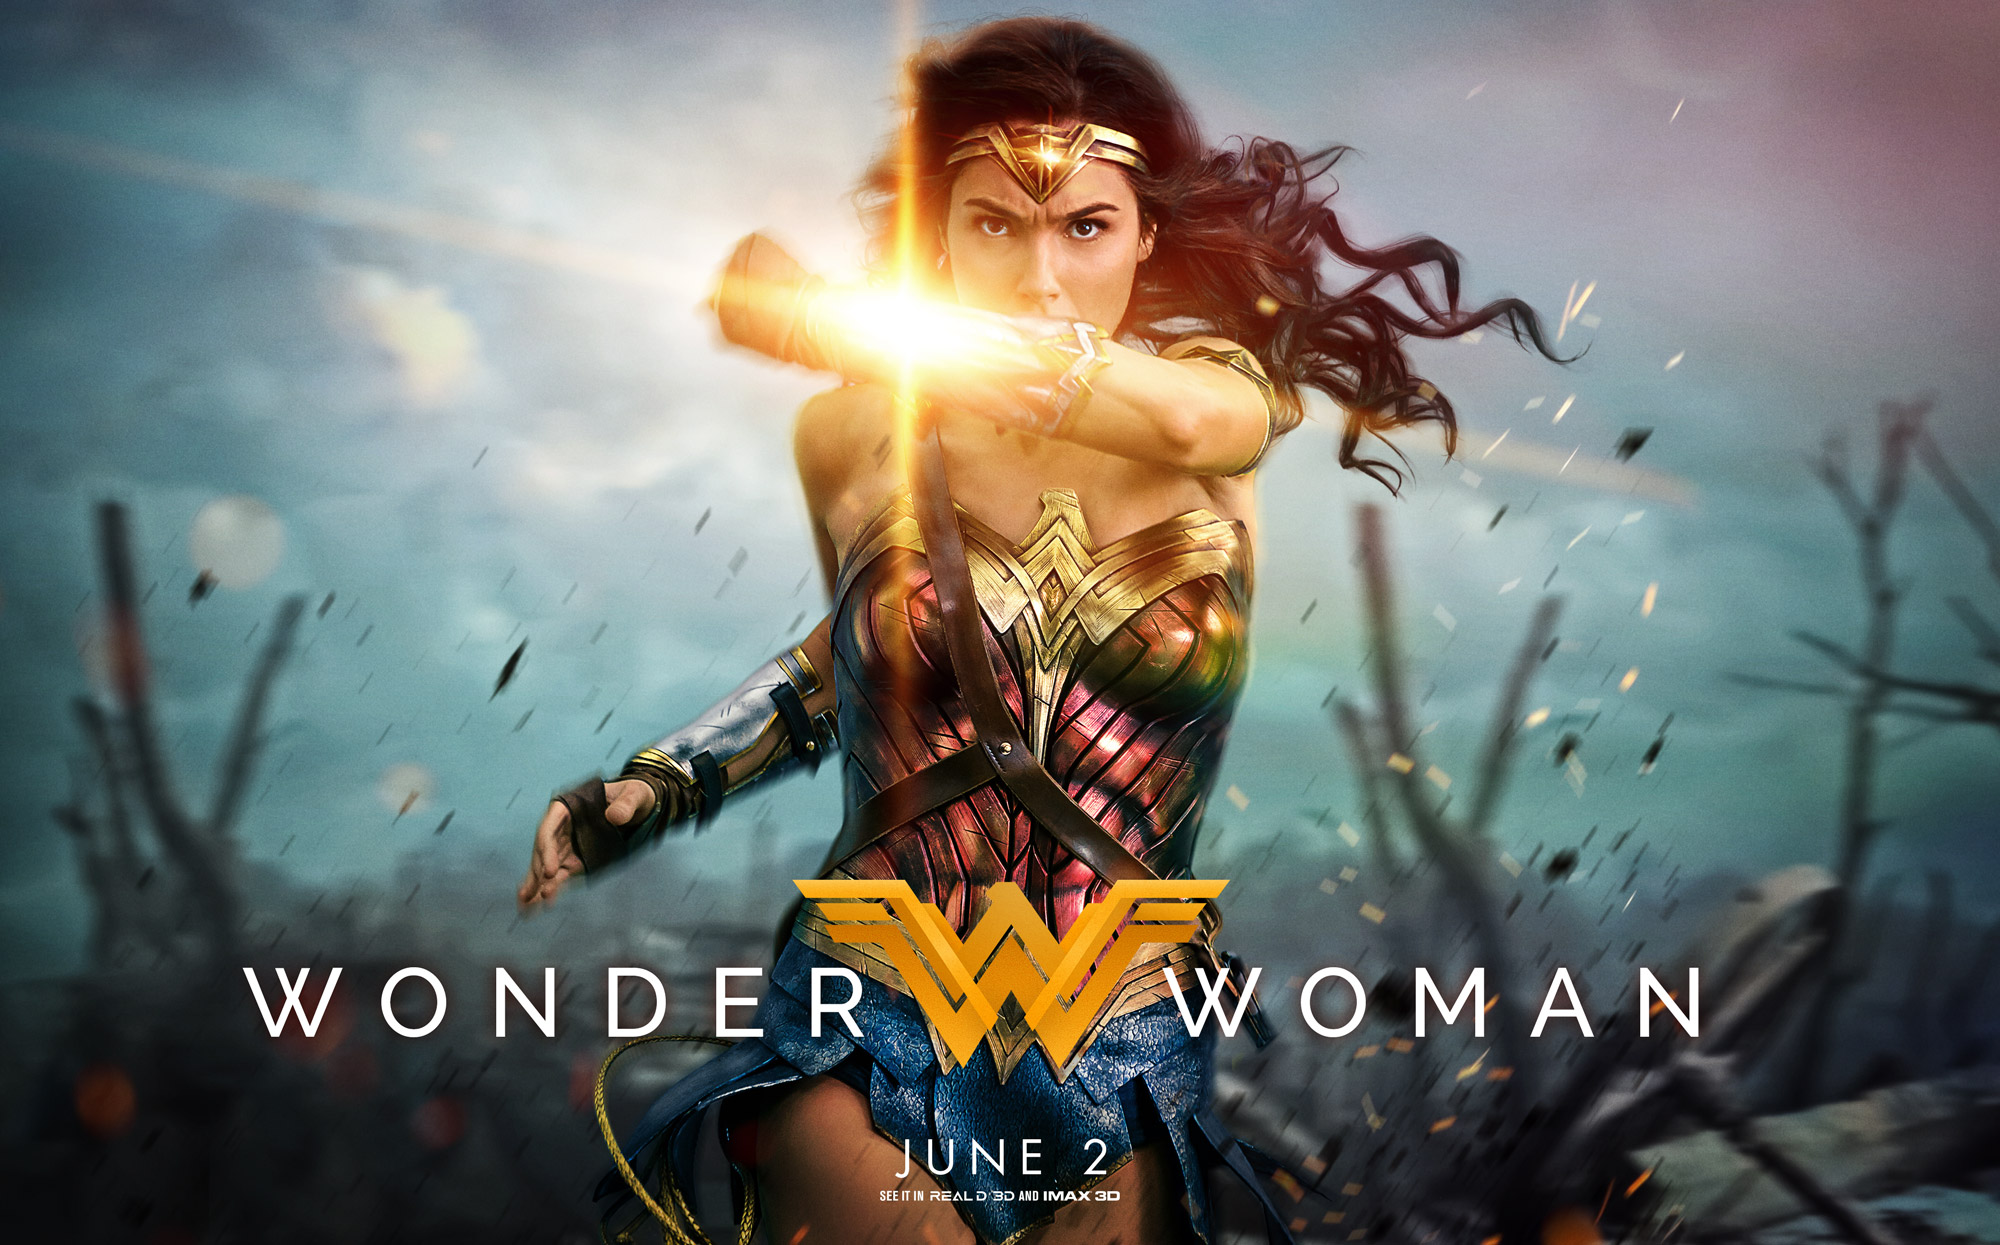 MOVIE REVIEW – WONDER WOMAN